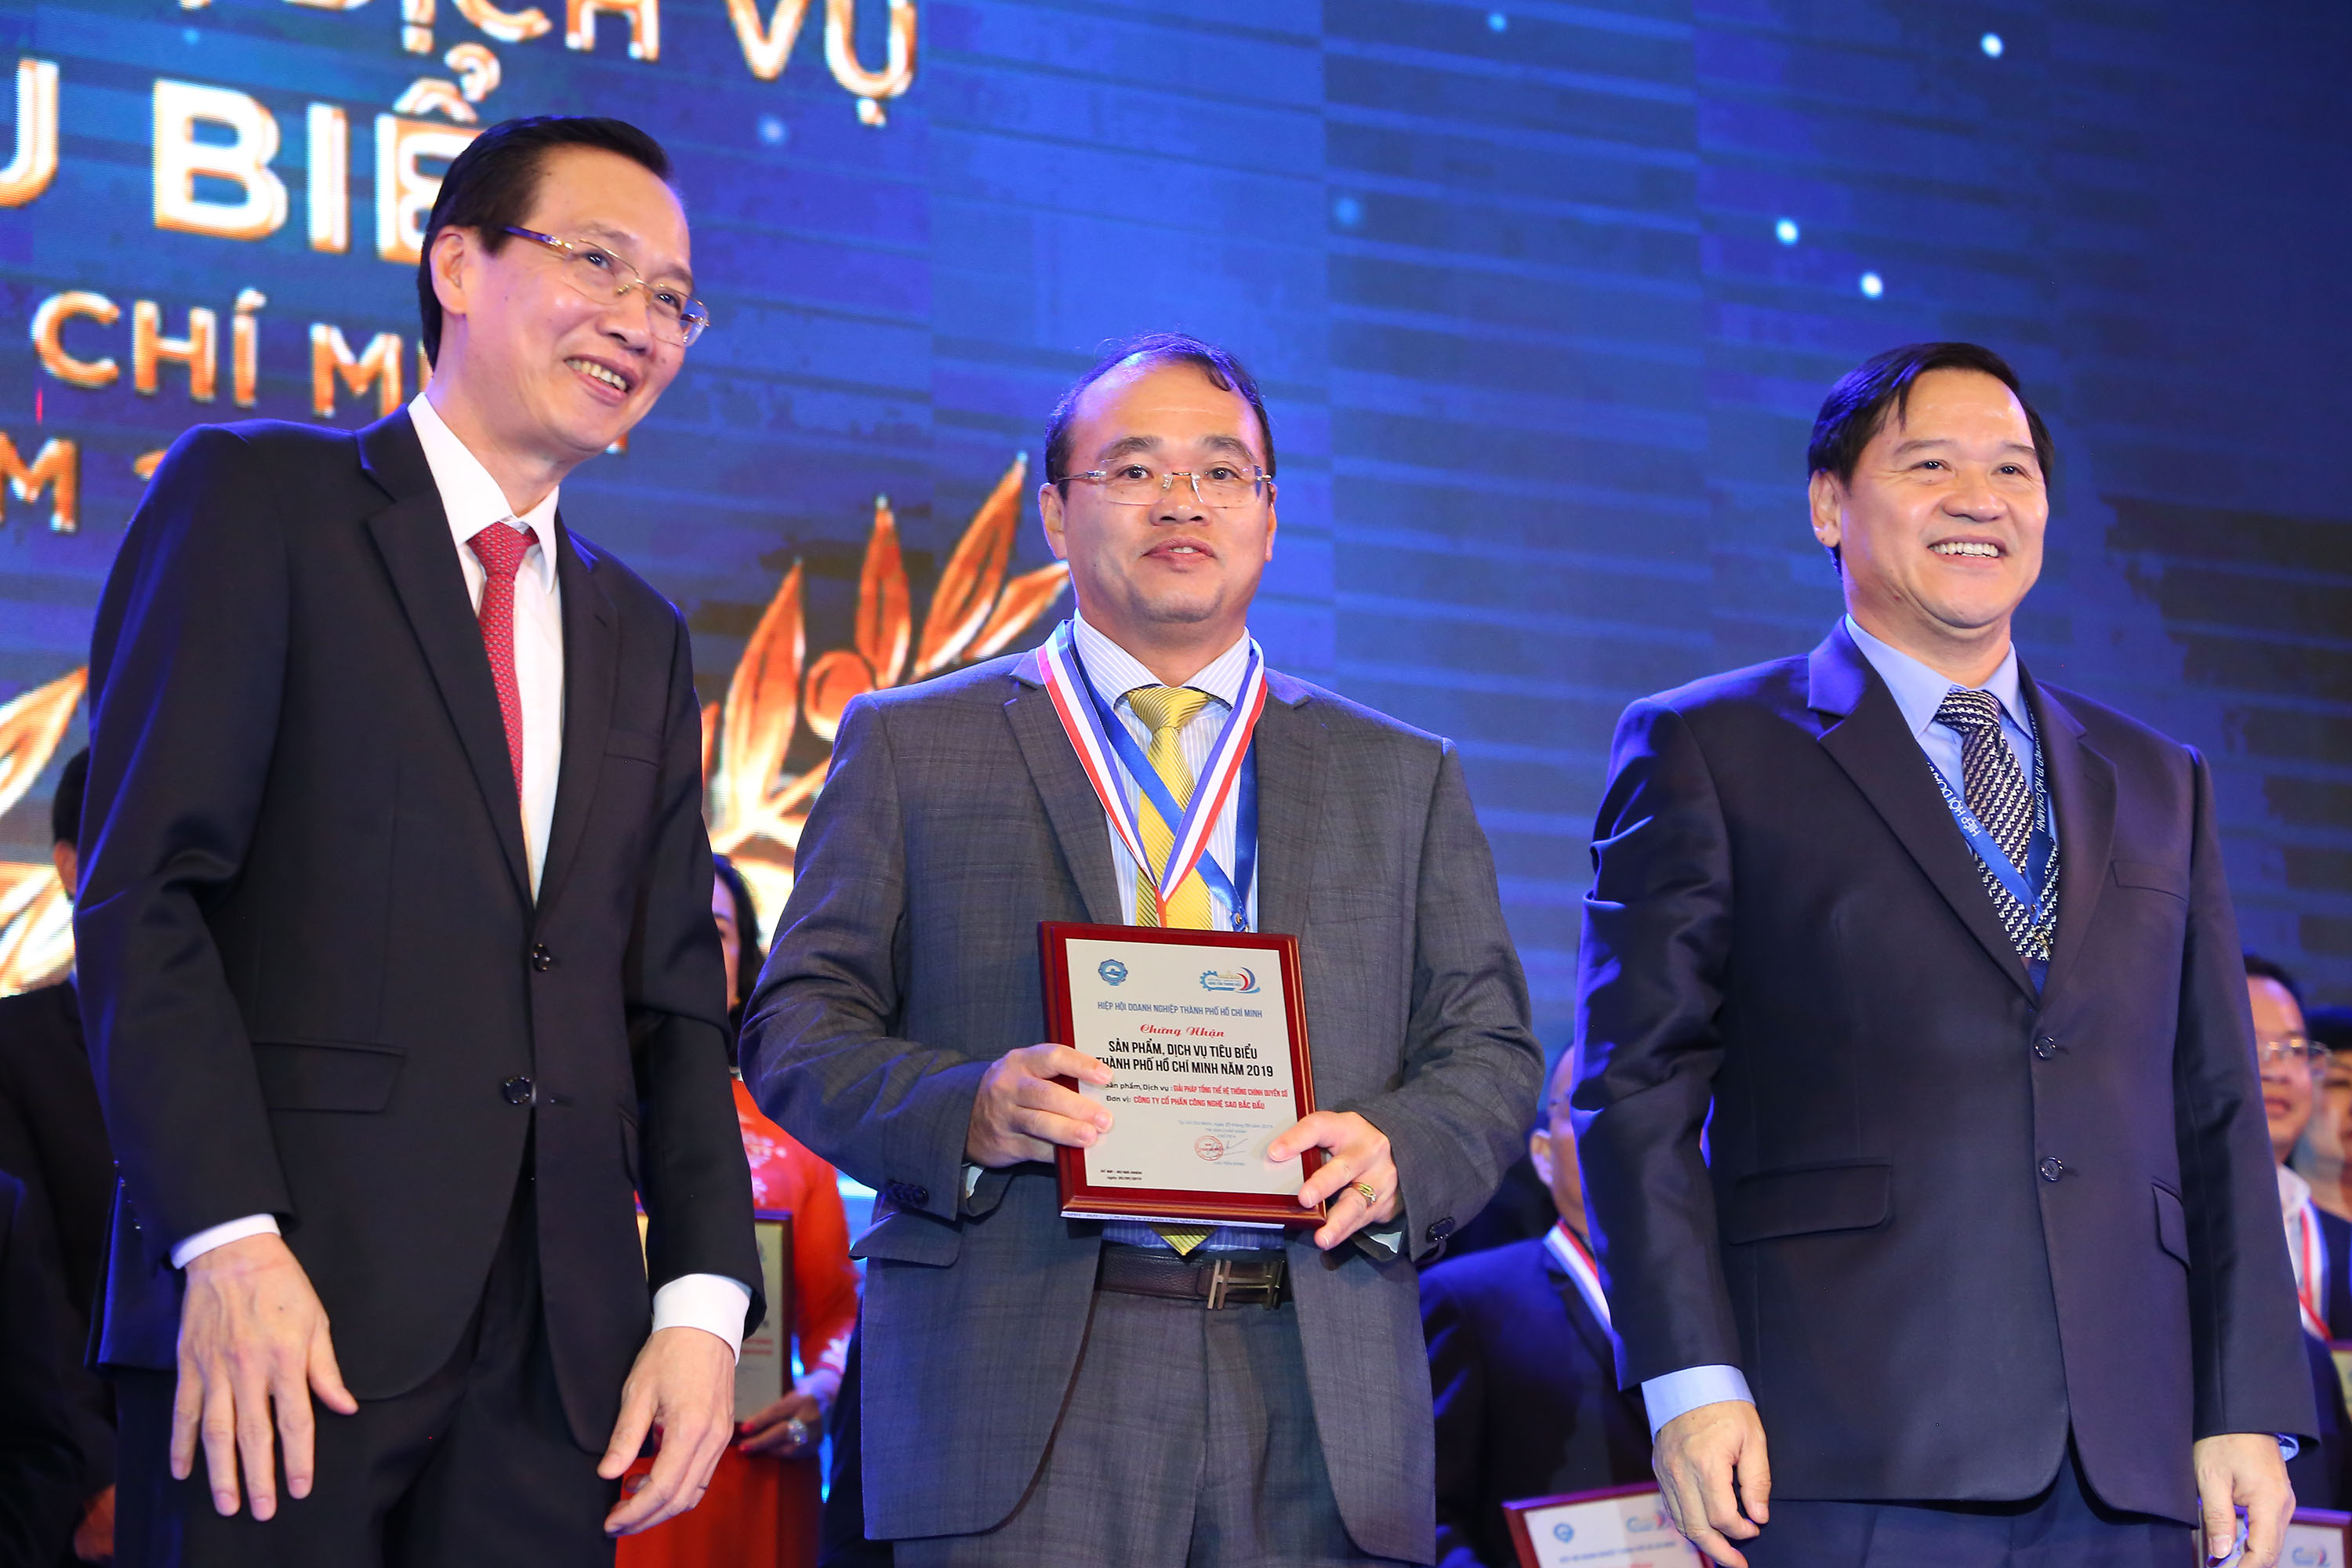 In the evening of October 22nd 2019, Vietnam Software & IT Services Association (VINASA) held a ceremony to award certificate of 50 + 10 Vietnamese Leading IT Enterprises, Sao Bac Dau continued to be one of the honored enterprises this time.   In order to